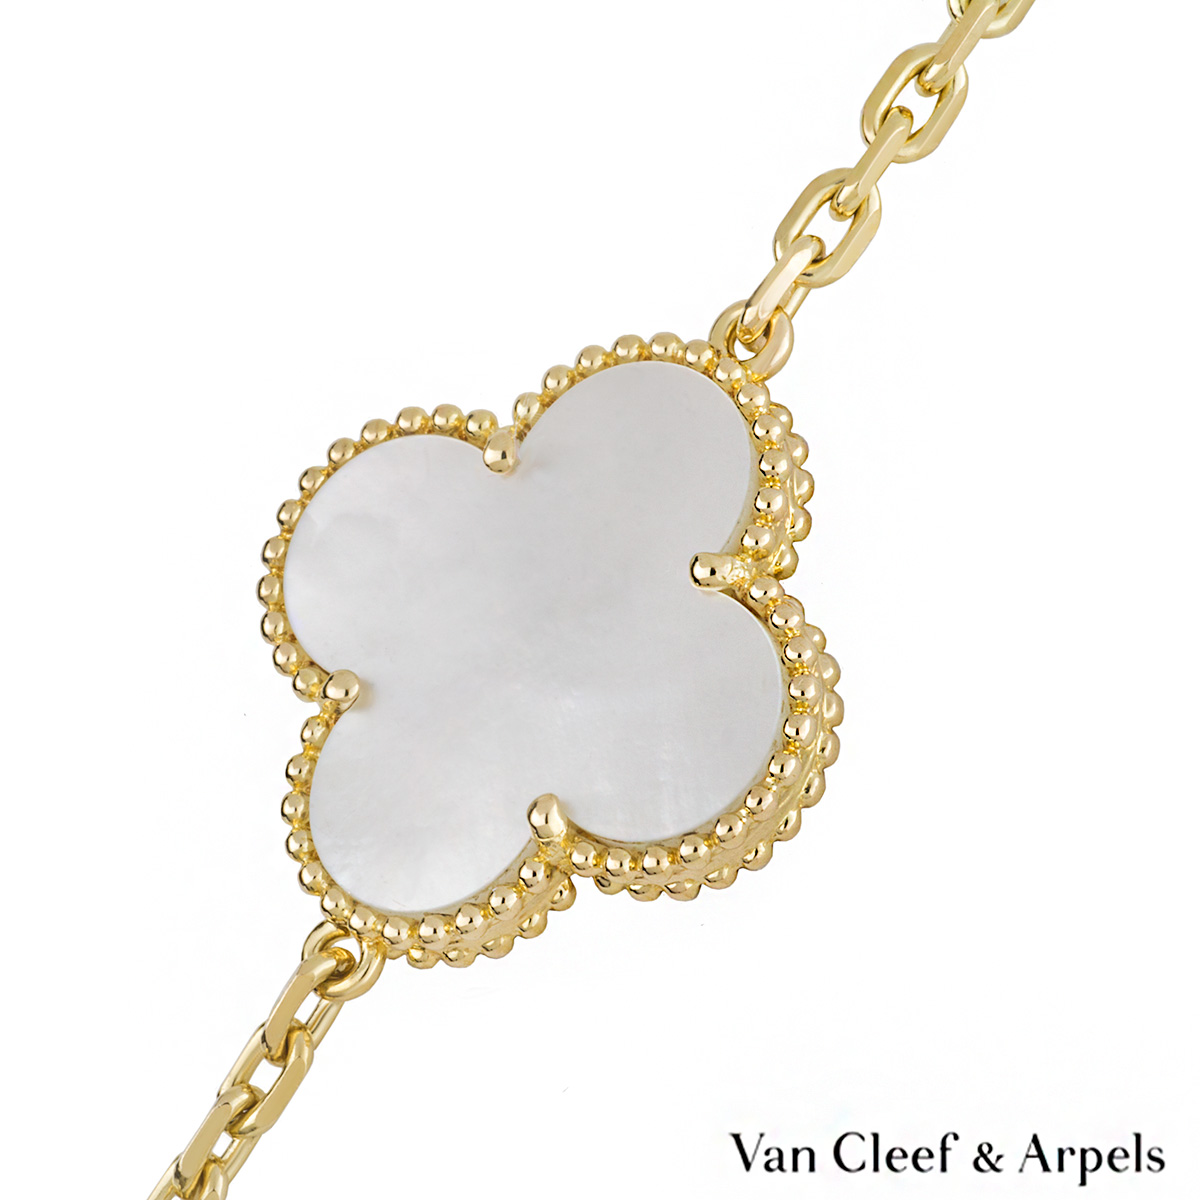 Van cleef arpels 18k yellow gold magic alhambra necklace van cleef arpels 18k yellow gold magic alhambra necklace vcard79400 aloadofball Choice Image